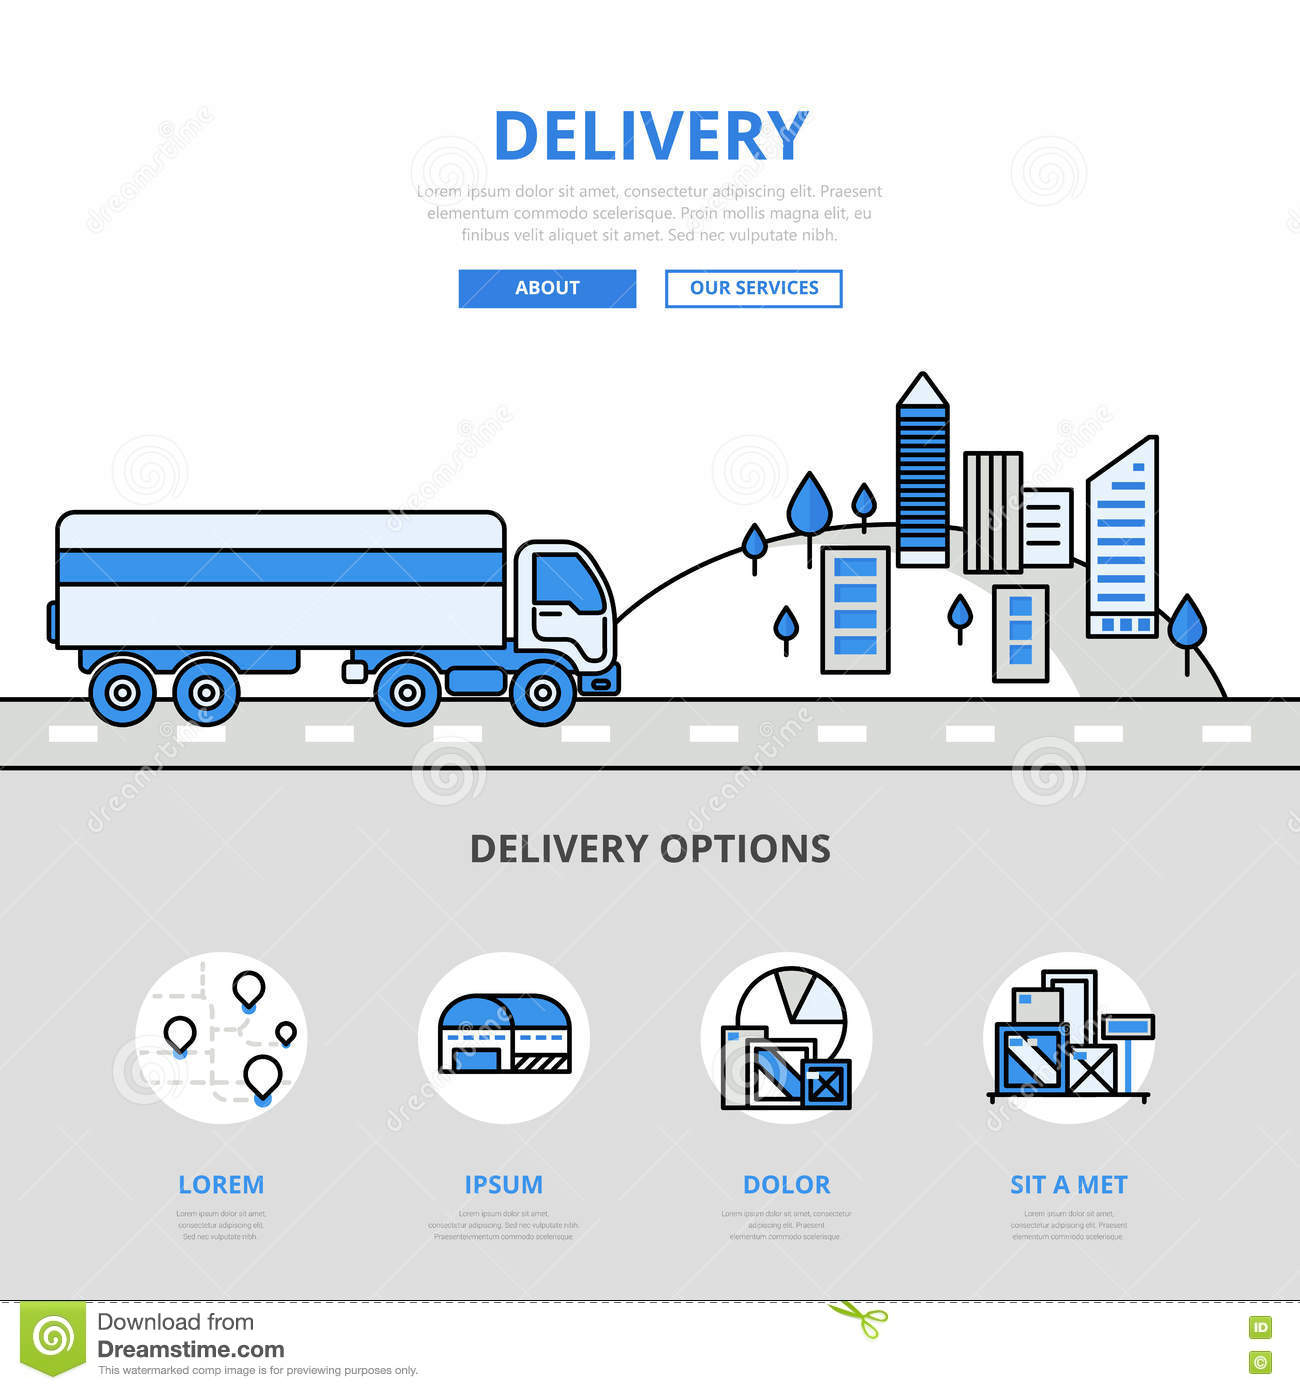 Line Drawing Website : Delivery road transport banner line art vector icons